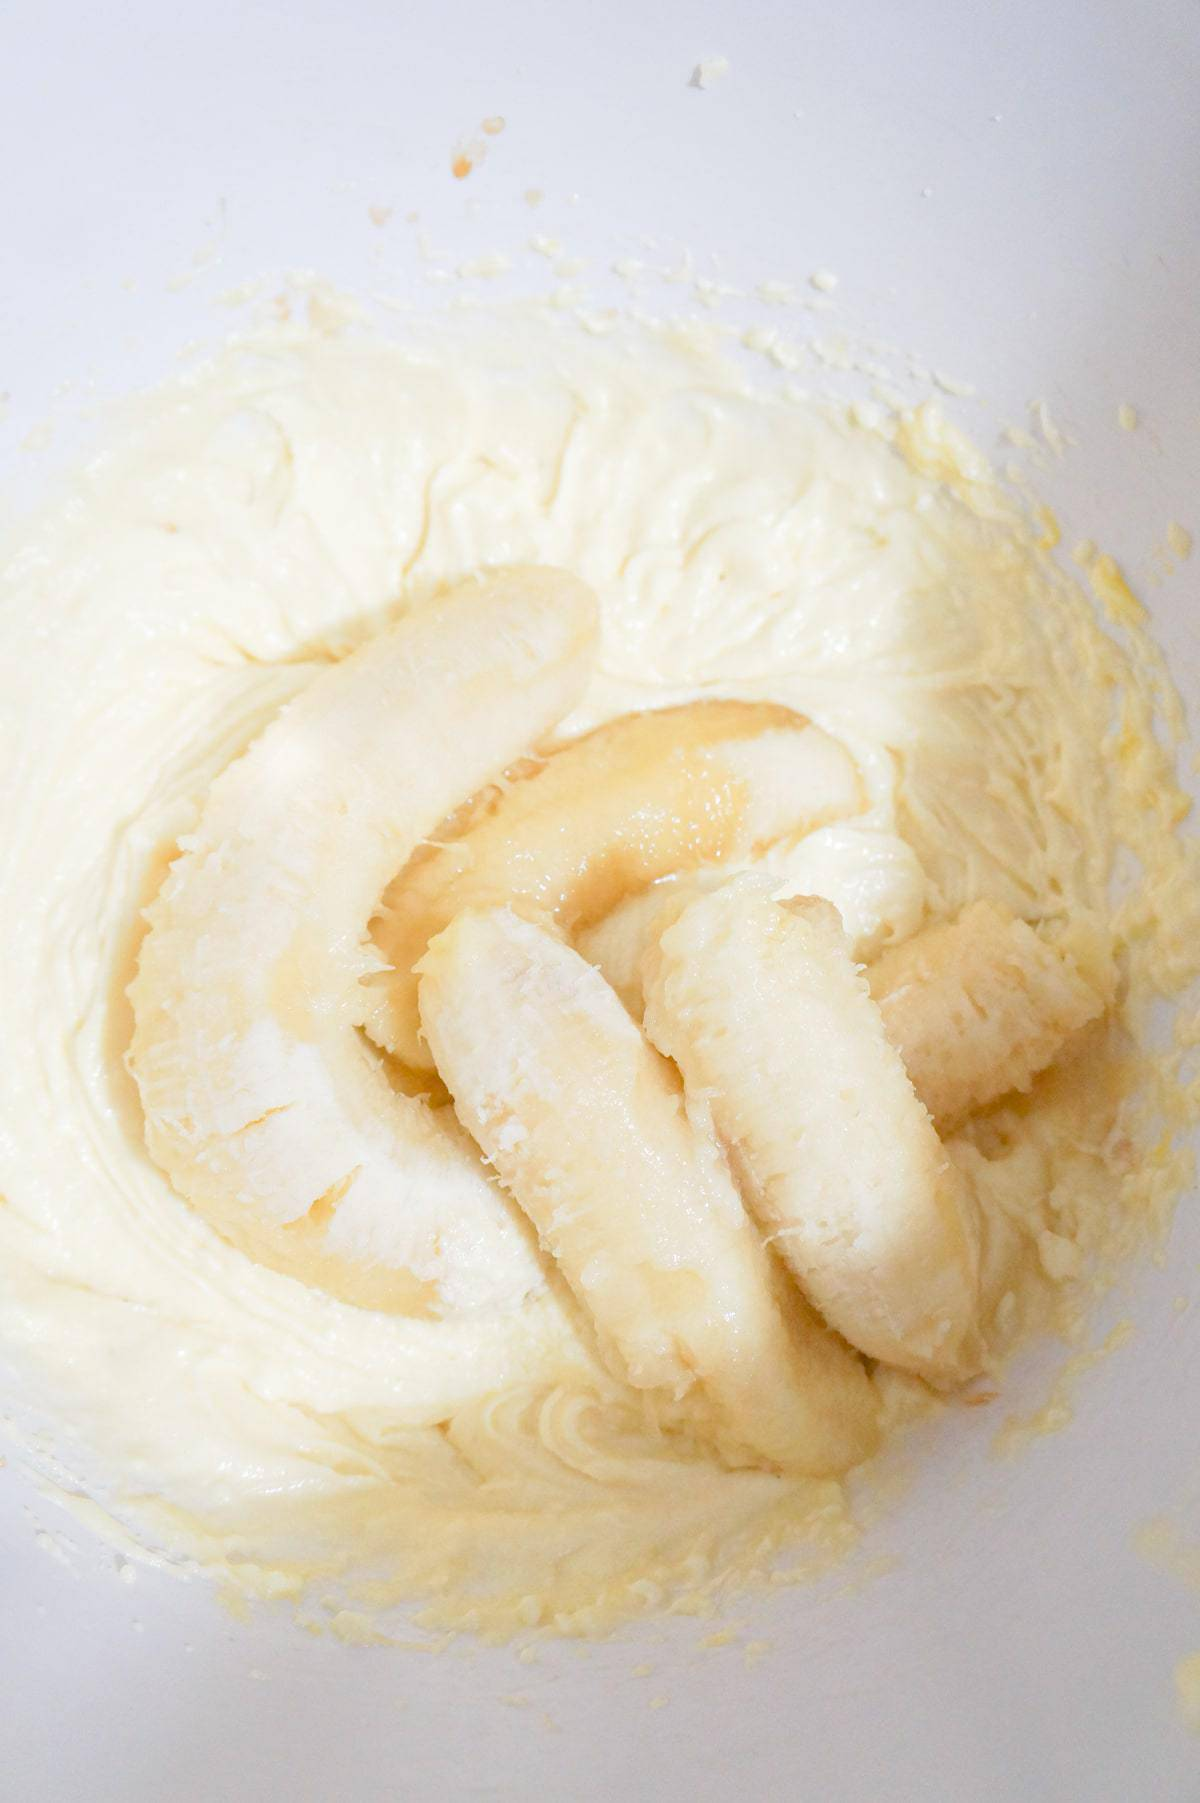 ripe bananas on top of cream butter and sugar mixture in a mixing bowl